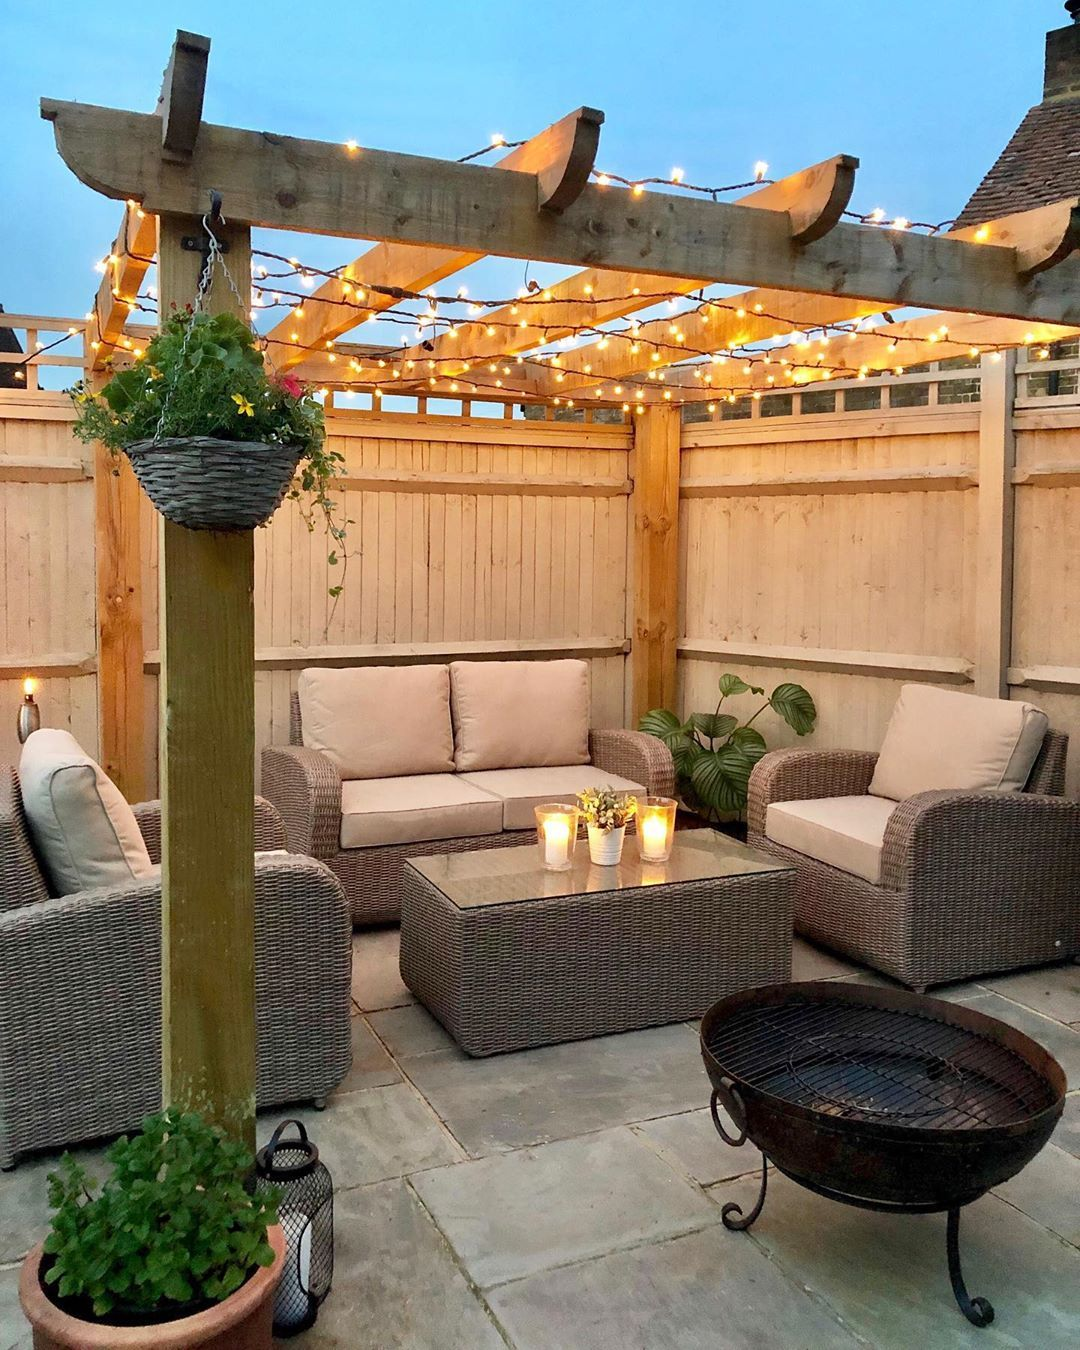 Here's a Quick Way to Create a Cozy Patio [15 Patio Furniture and Patio Accessories Ideas is part of Backyard patio designs, Outdoor gardens design, Backyard patio, Backyard decor, Backyard, Back garden design - Want a perfect patio this summer  Check out these15 ideas to make your patio more cozy, relaxing and welcoming [Patio furniture ideas and patio accessories]